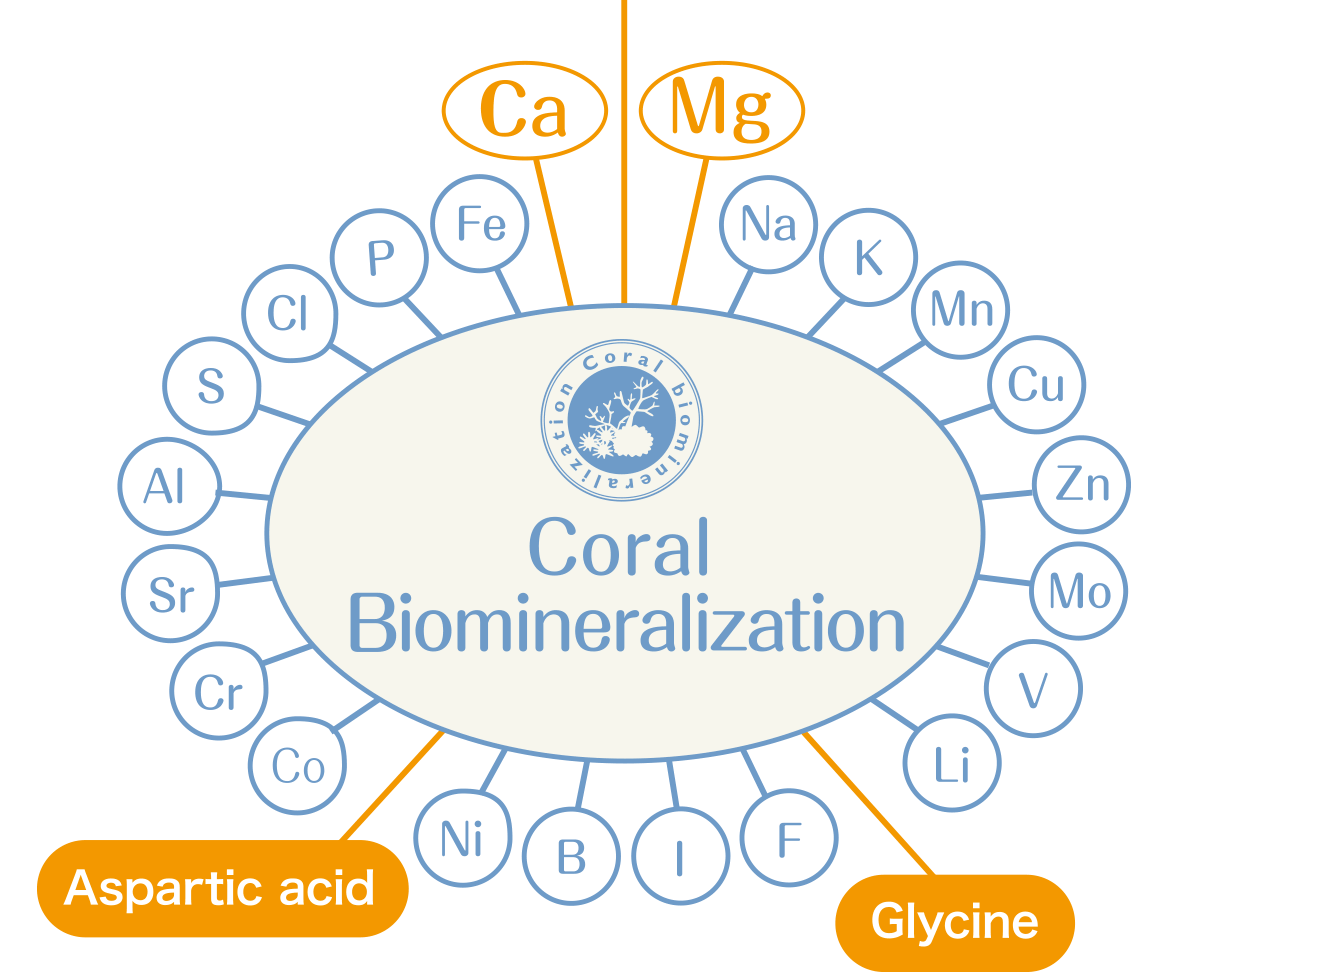 Coral Biomineralization